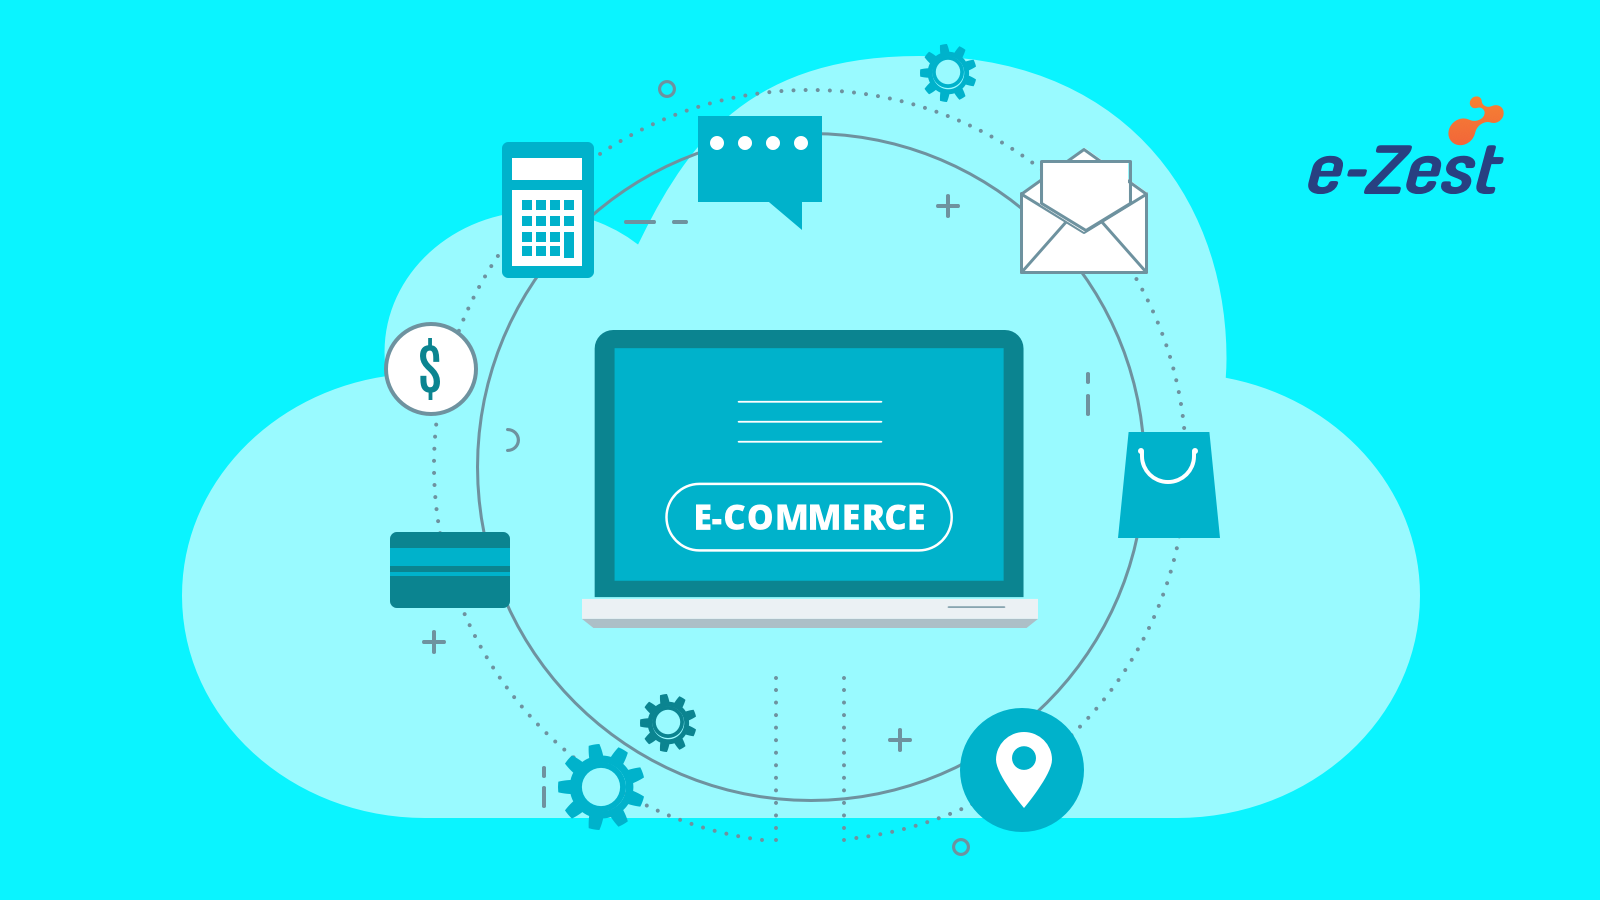 Why E-commerce and Cloud go hand in hand?